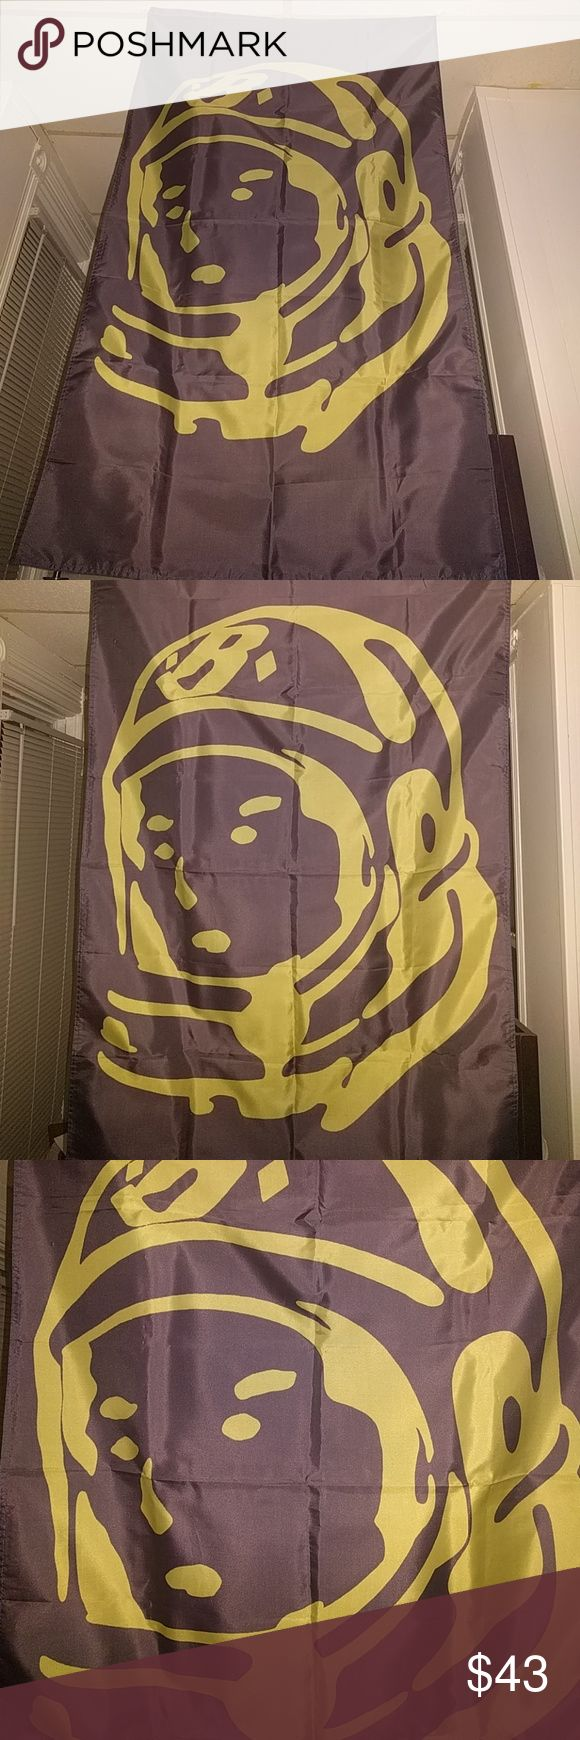 {BILLIONAIRE BOYS CLUB}High Definition 5ft Flag This is our last. Brilliant clarity, 5ft long and 3ft wide Billionaire Boys Club Accessories Key & Card Holders